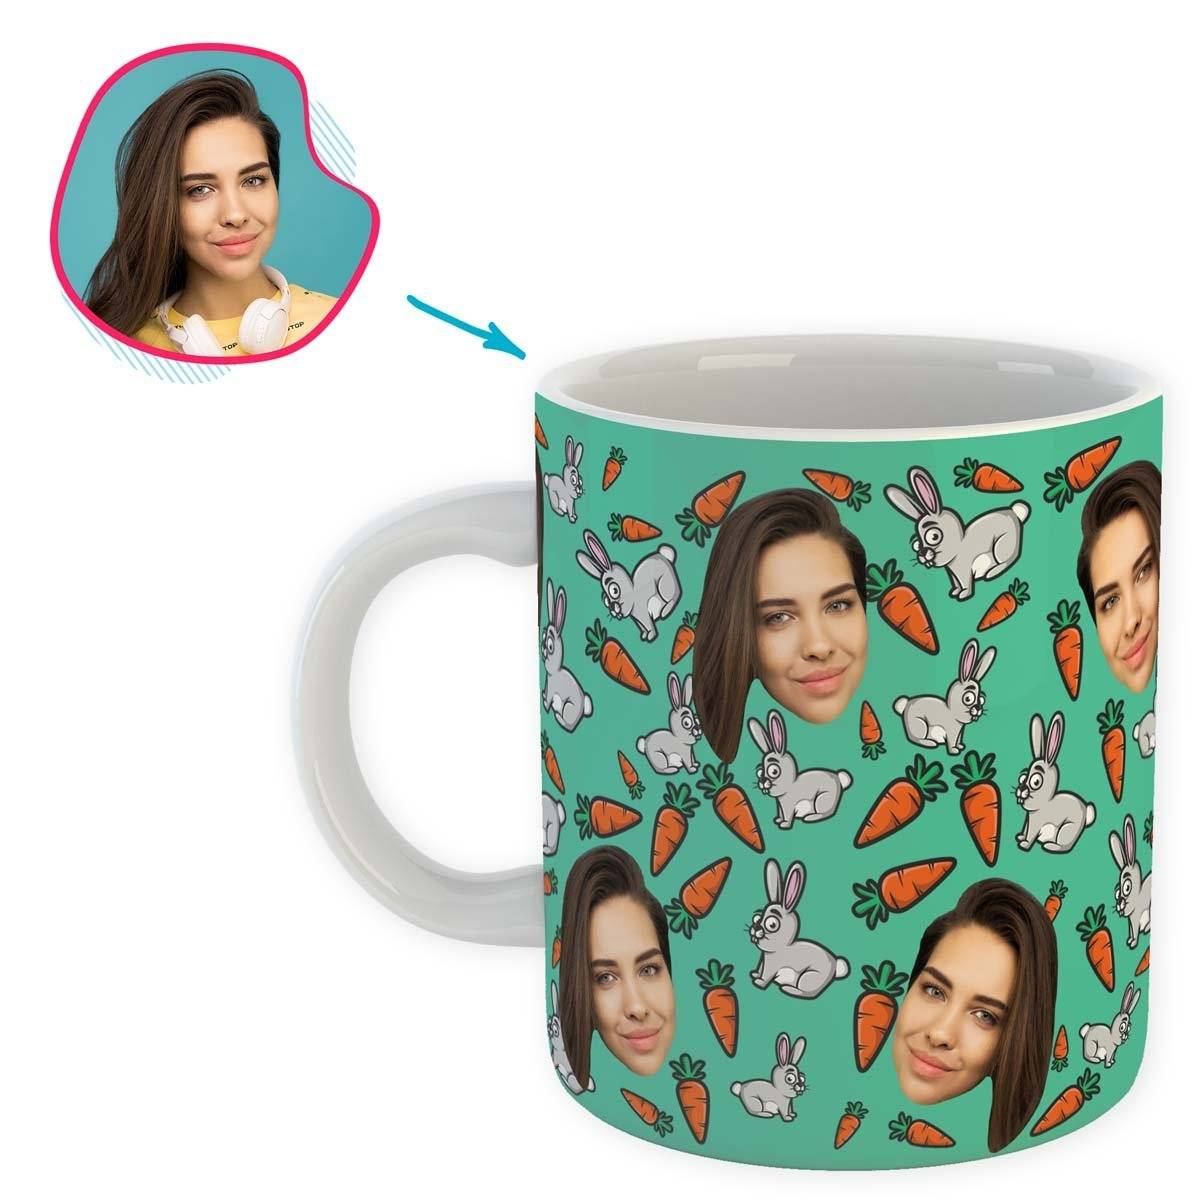 mint Bunny mug personalized with photo of face printed on it